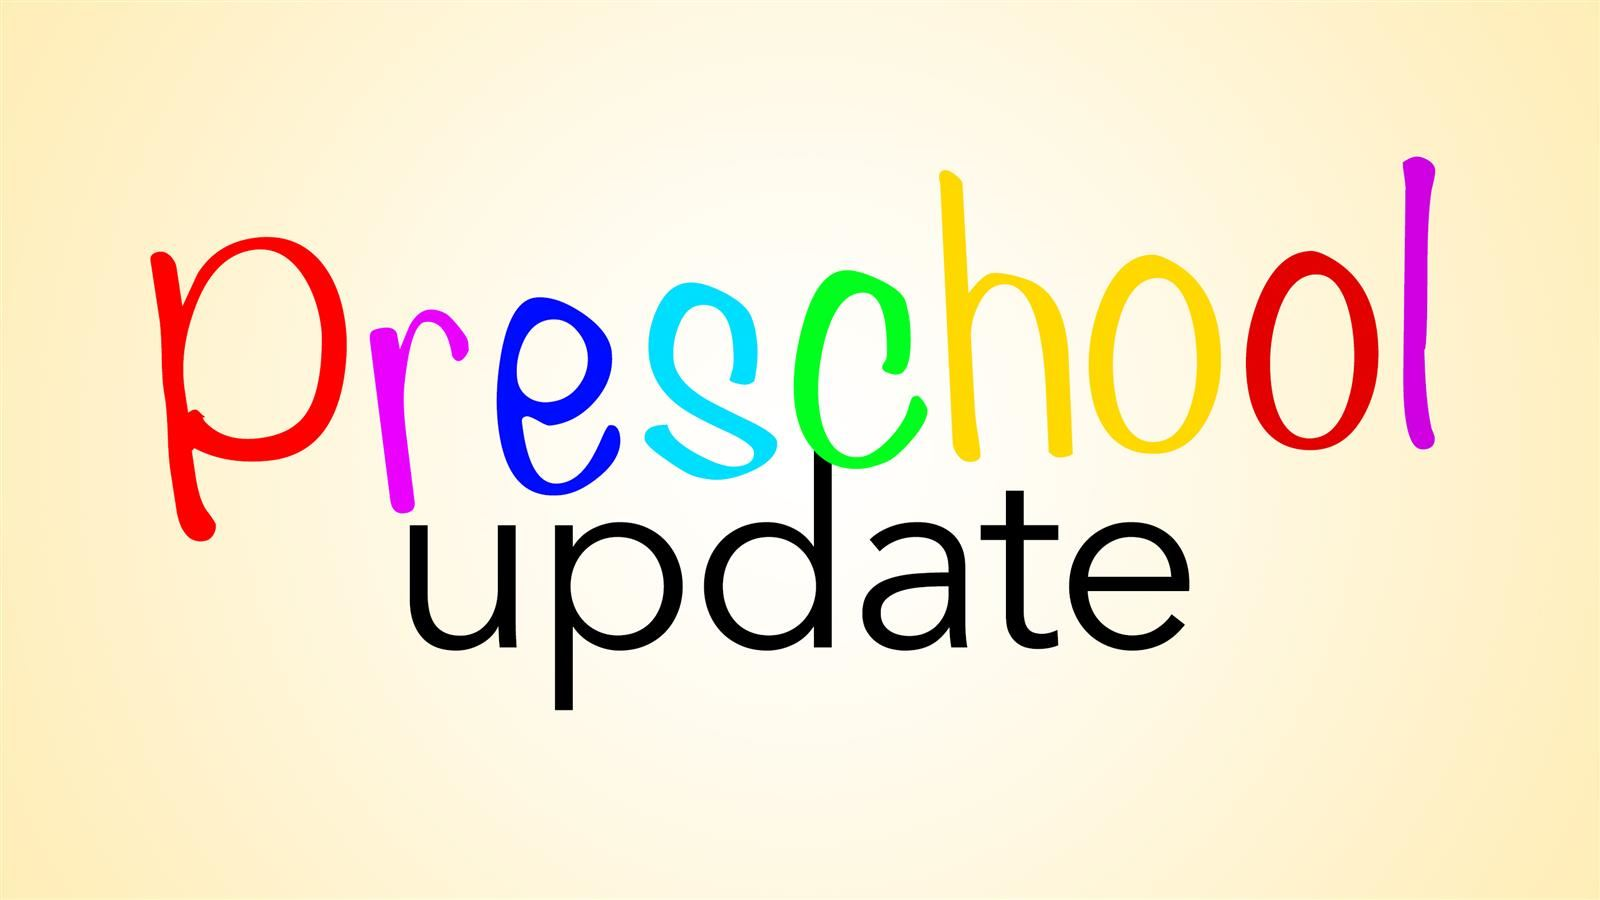 Preschool & Childcare Update